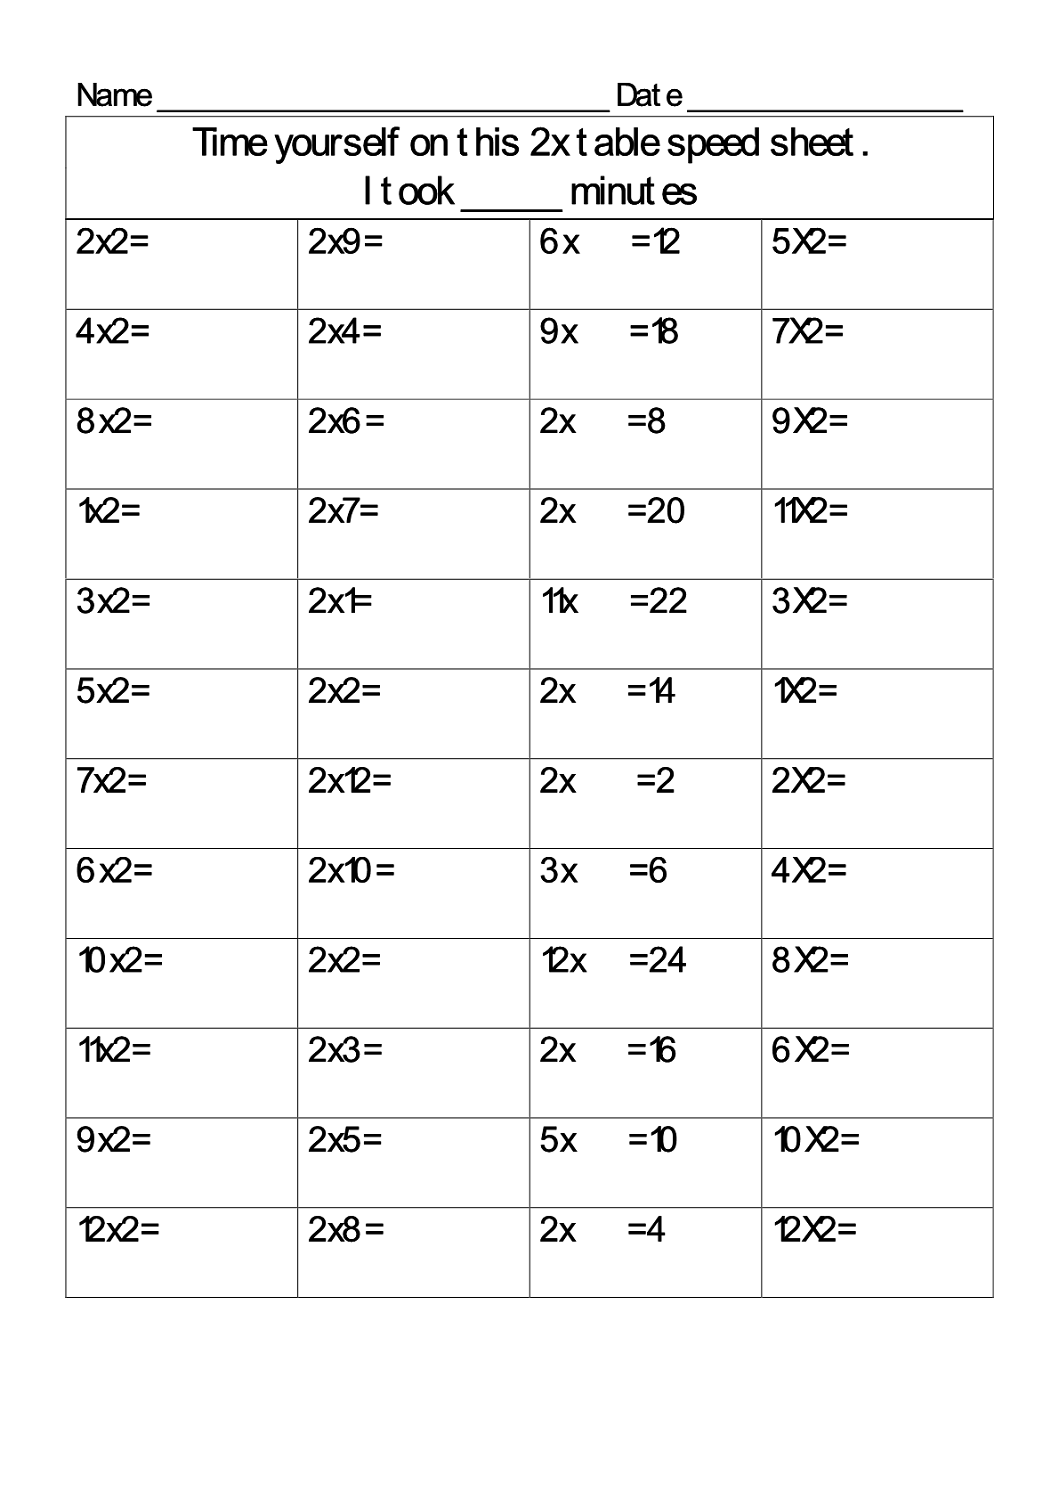 Free 2 Times Table Worksheets